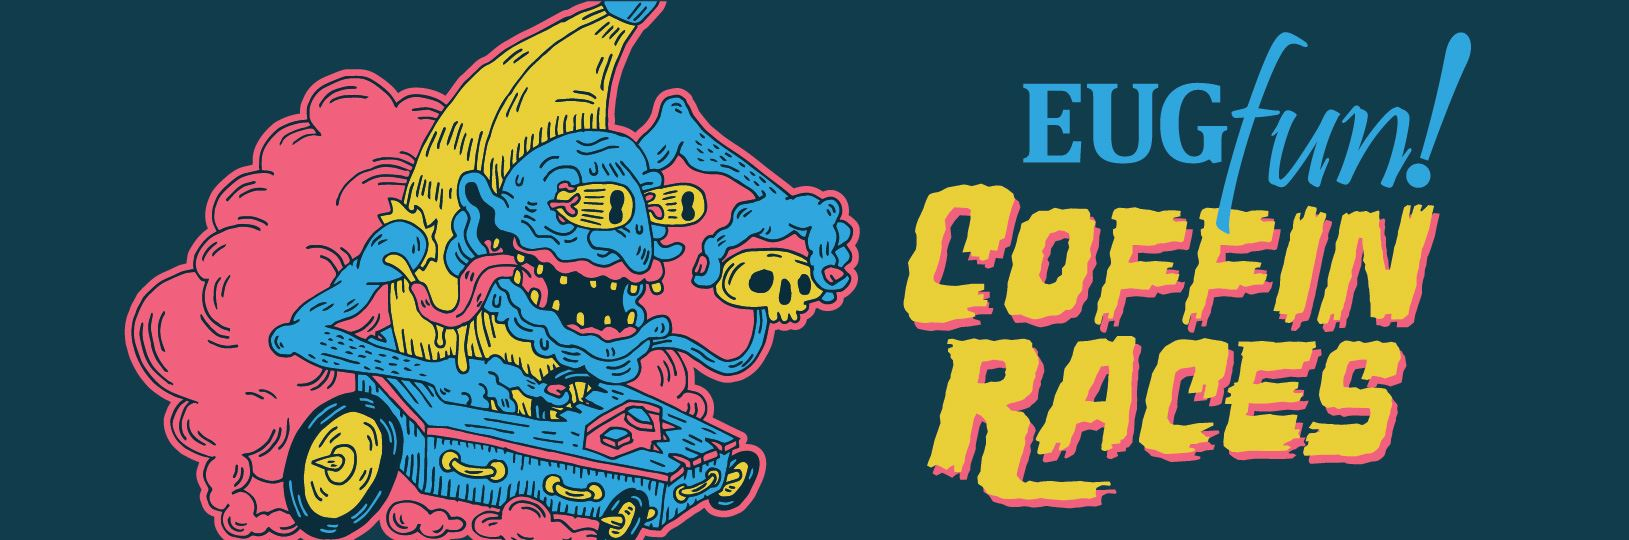 Coffin Races header